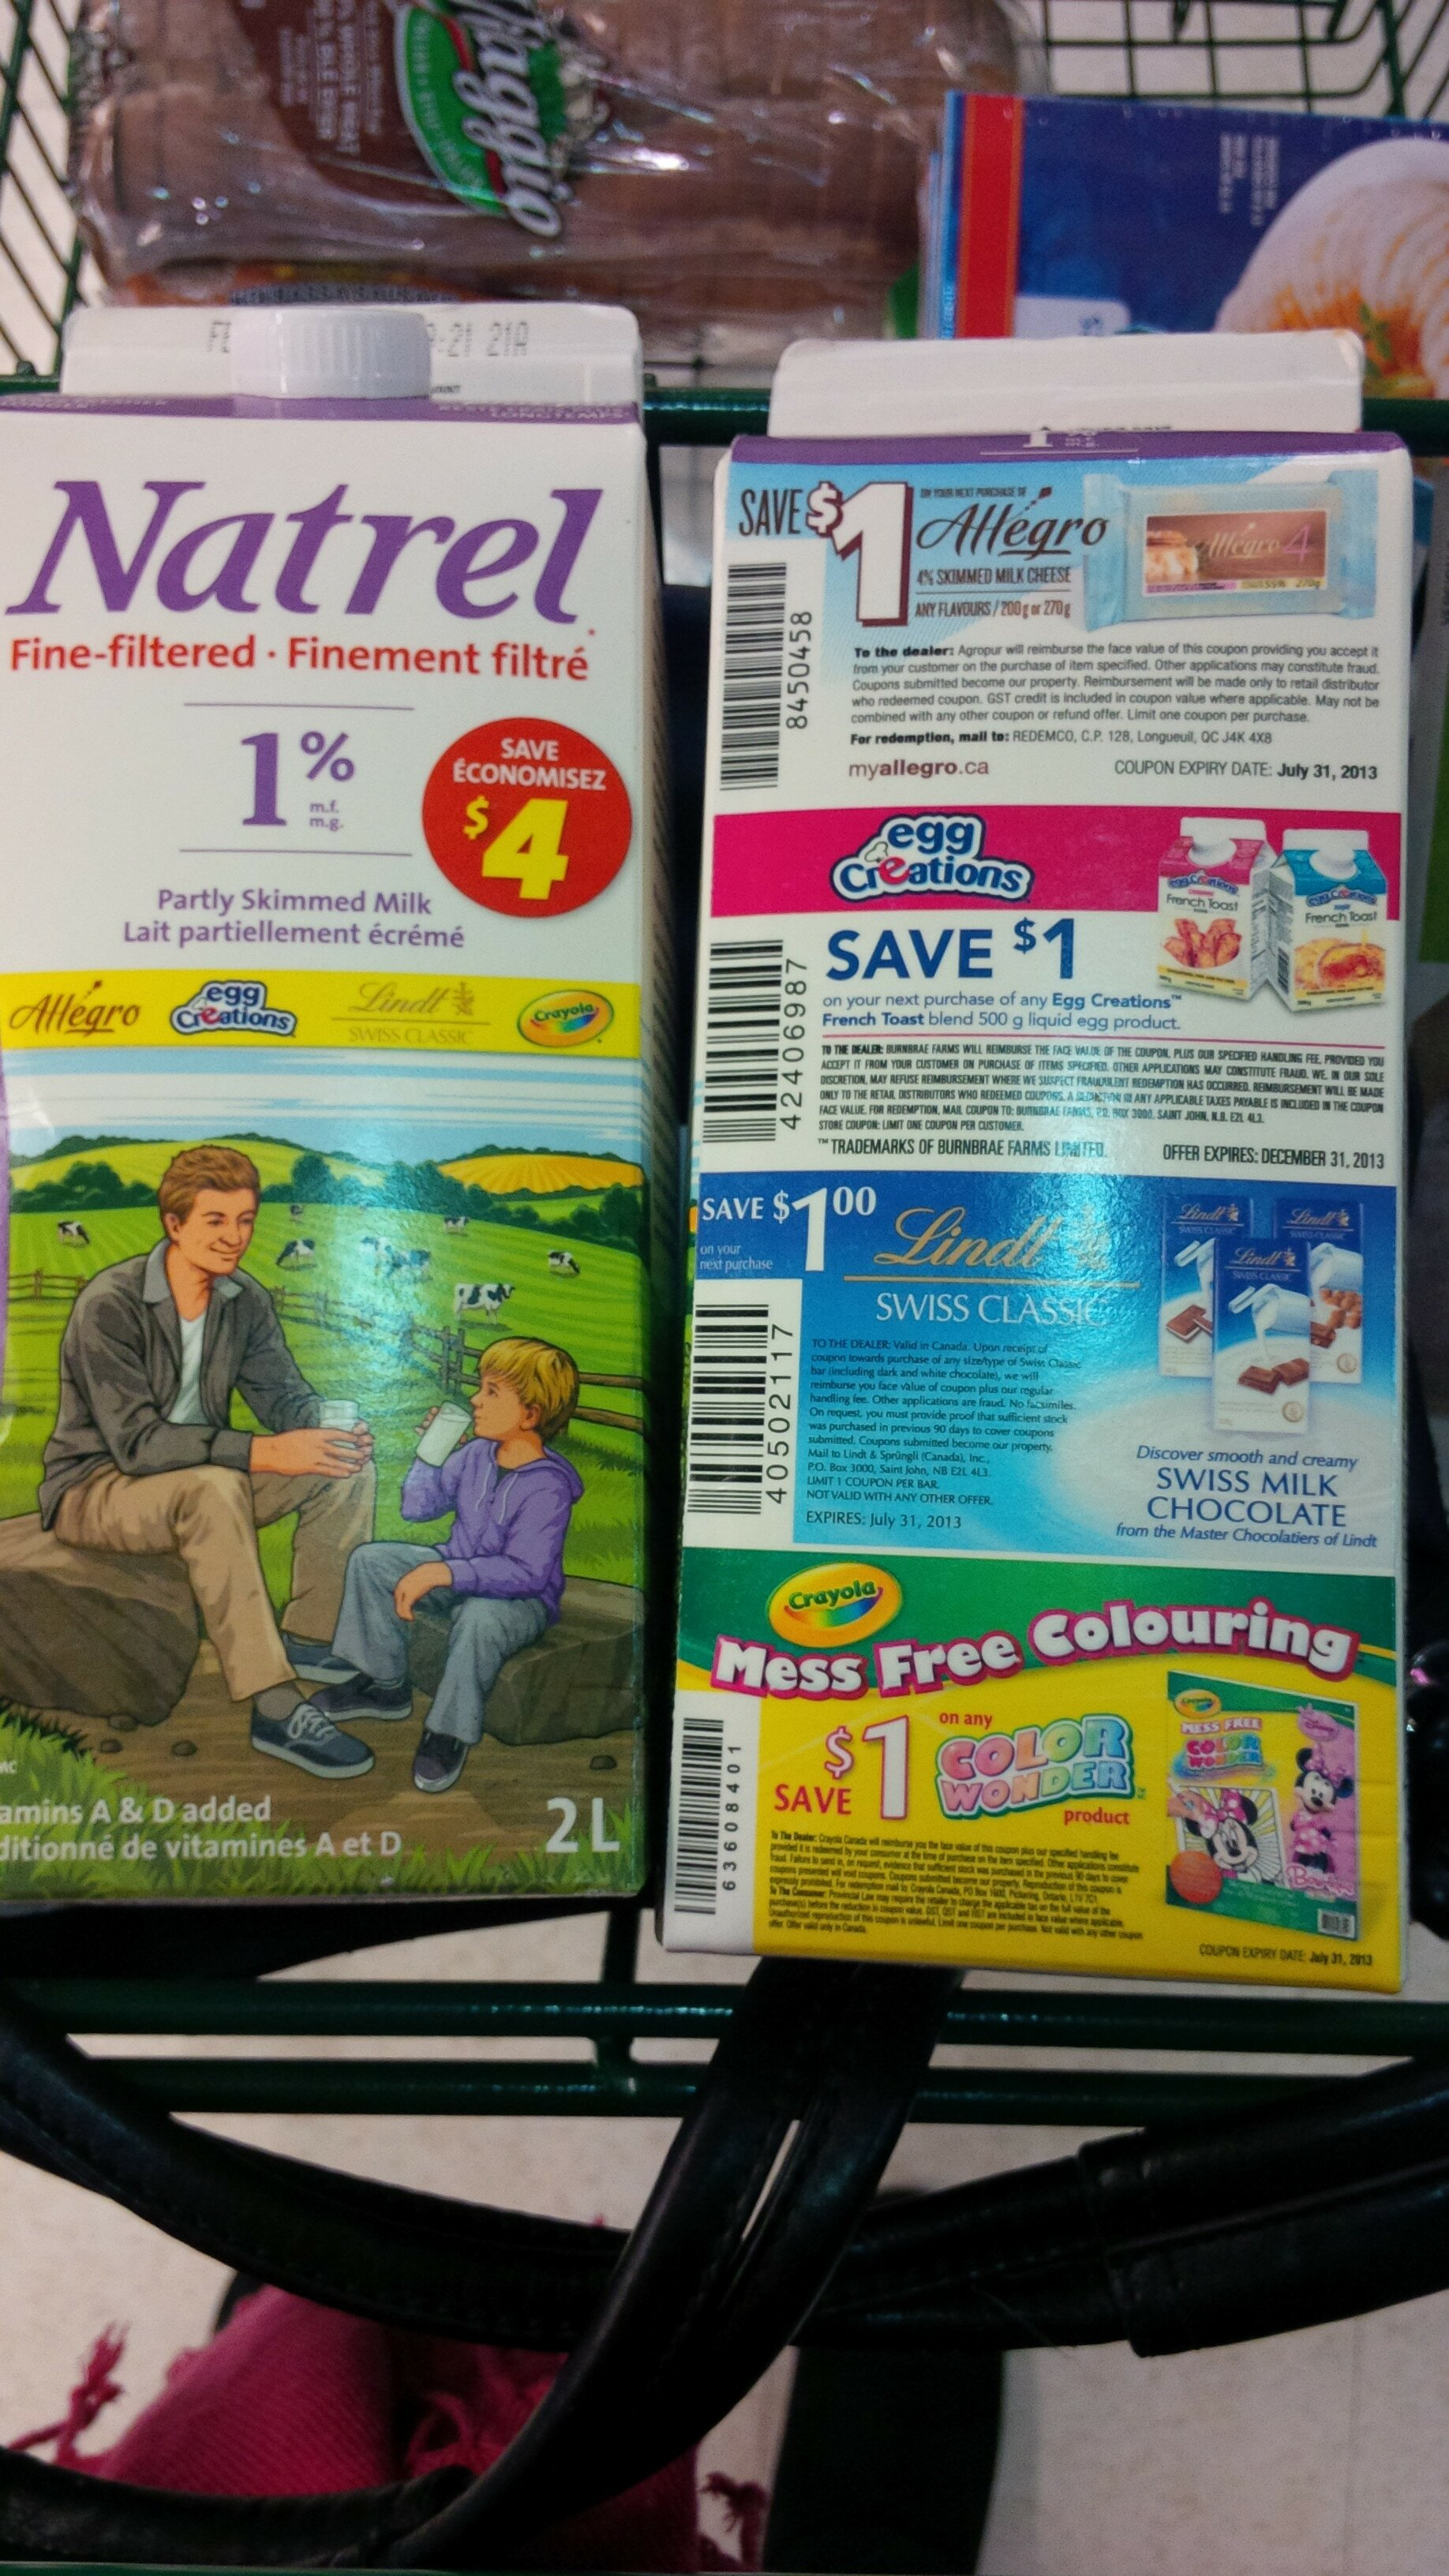 *Specially Marked 2L Natrel Milk Coupons* Crayola + Lindt Chocolate Coupons